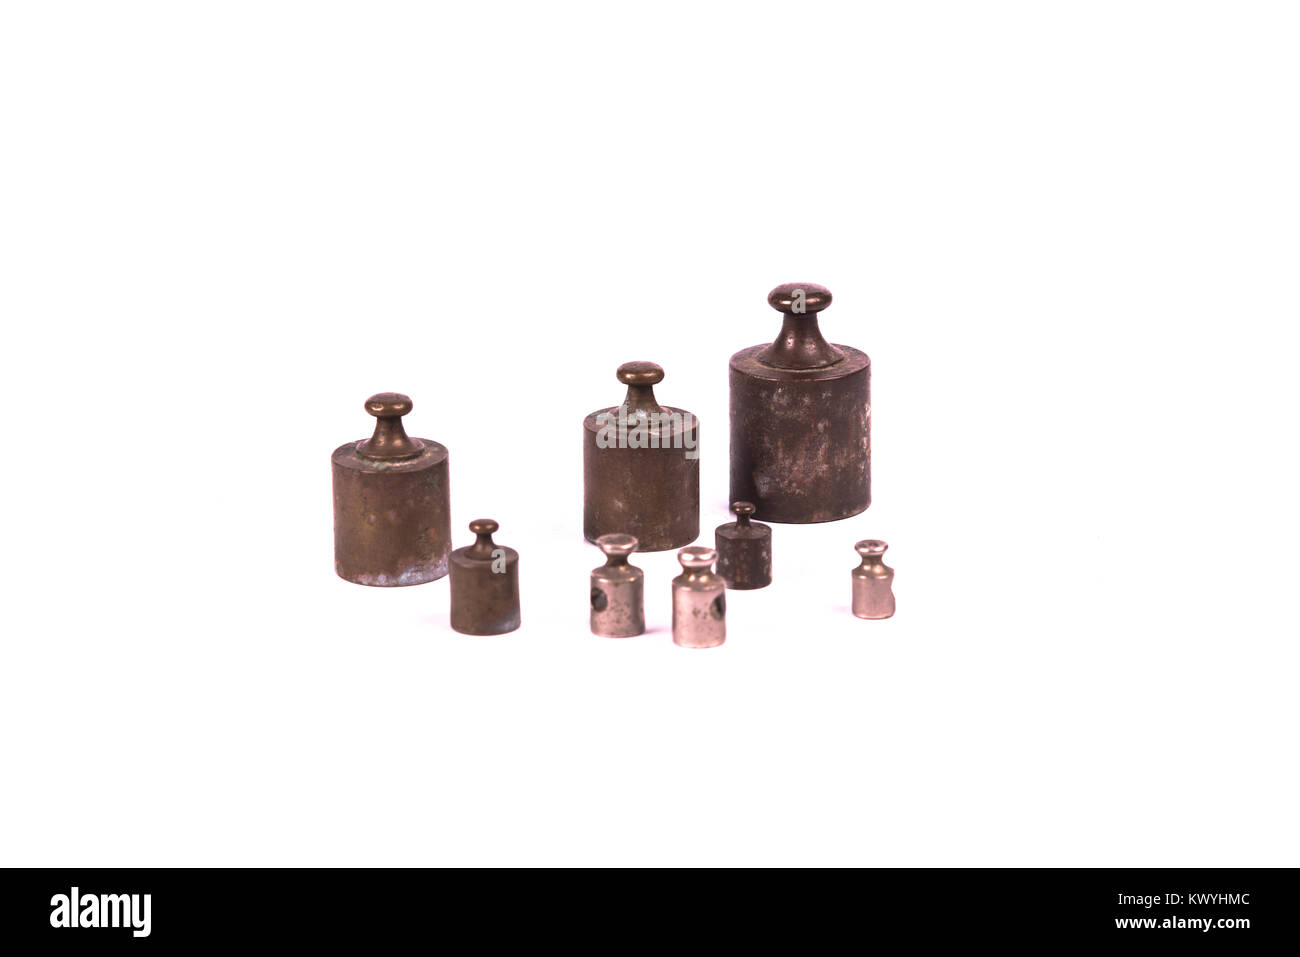 vintage weights over a white background - Stock Image